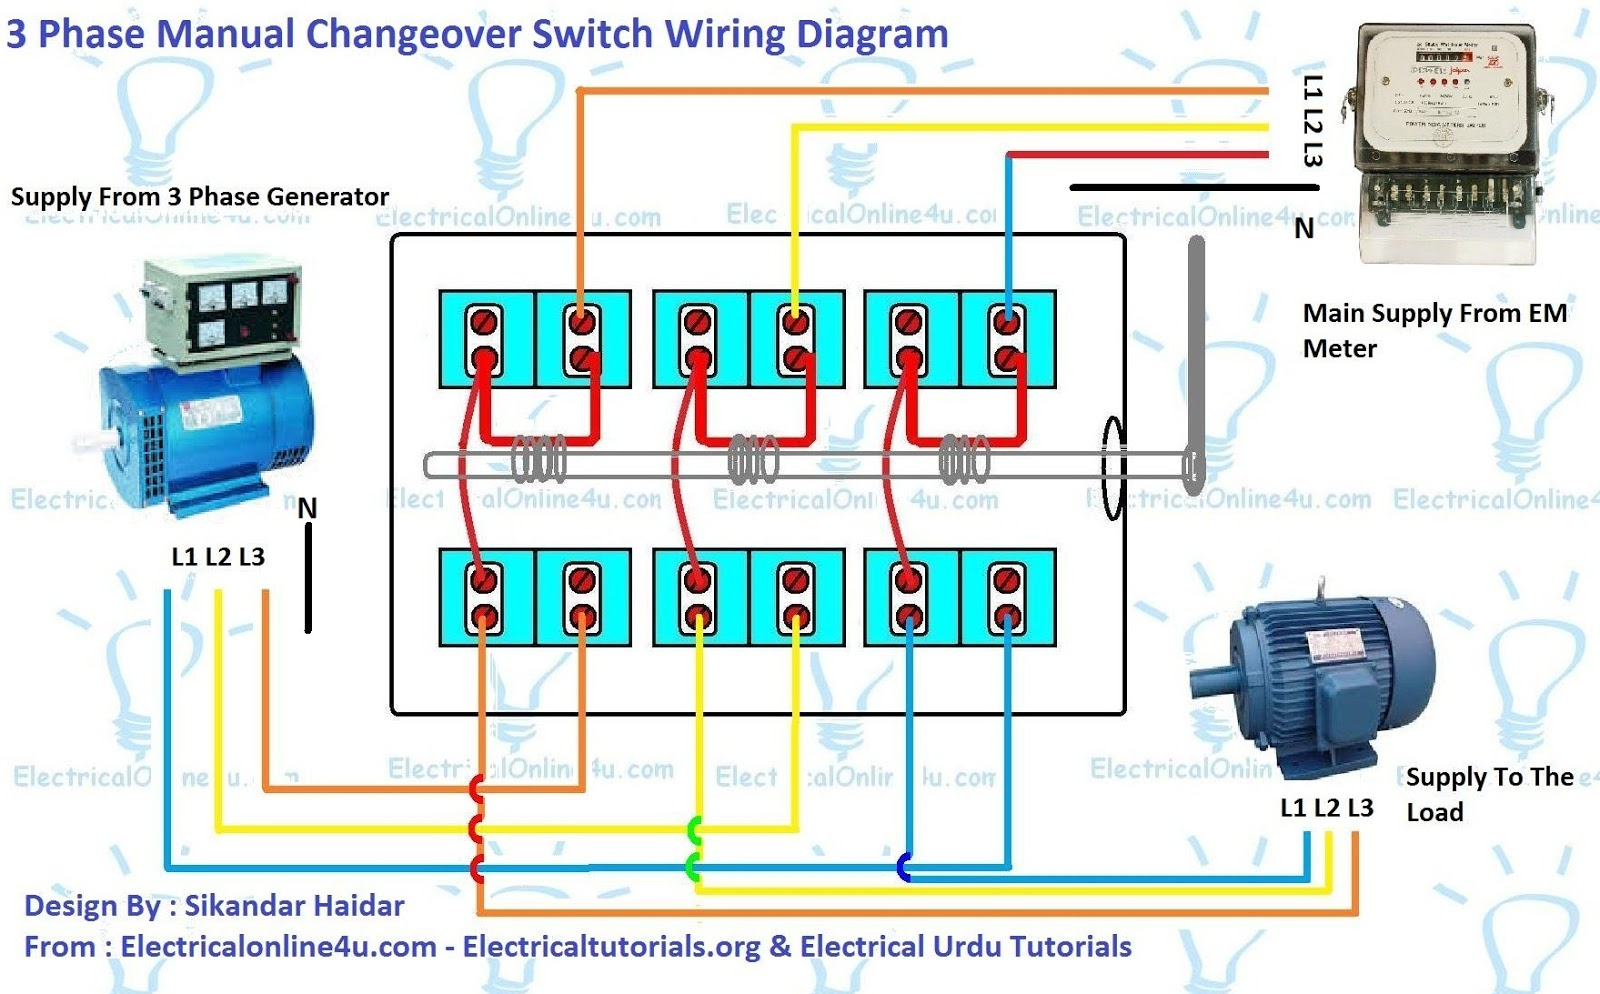 Pleasing 3 Phase Manual Changeover Switch Wiring Diagram For Generator Wiring Cloud Hisonuggs Outletorg